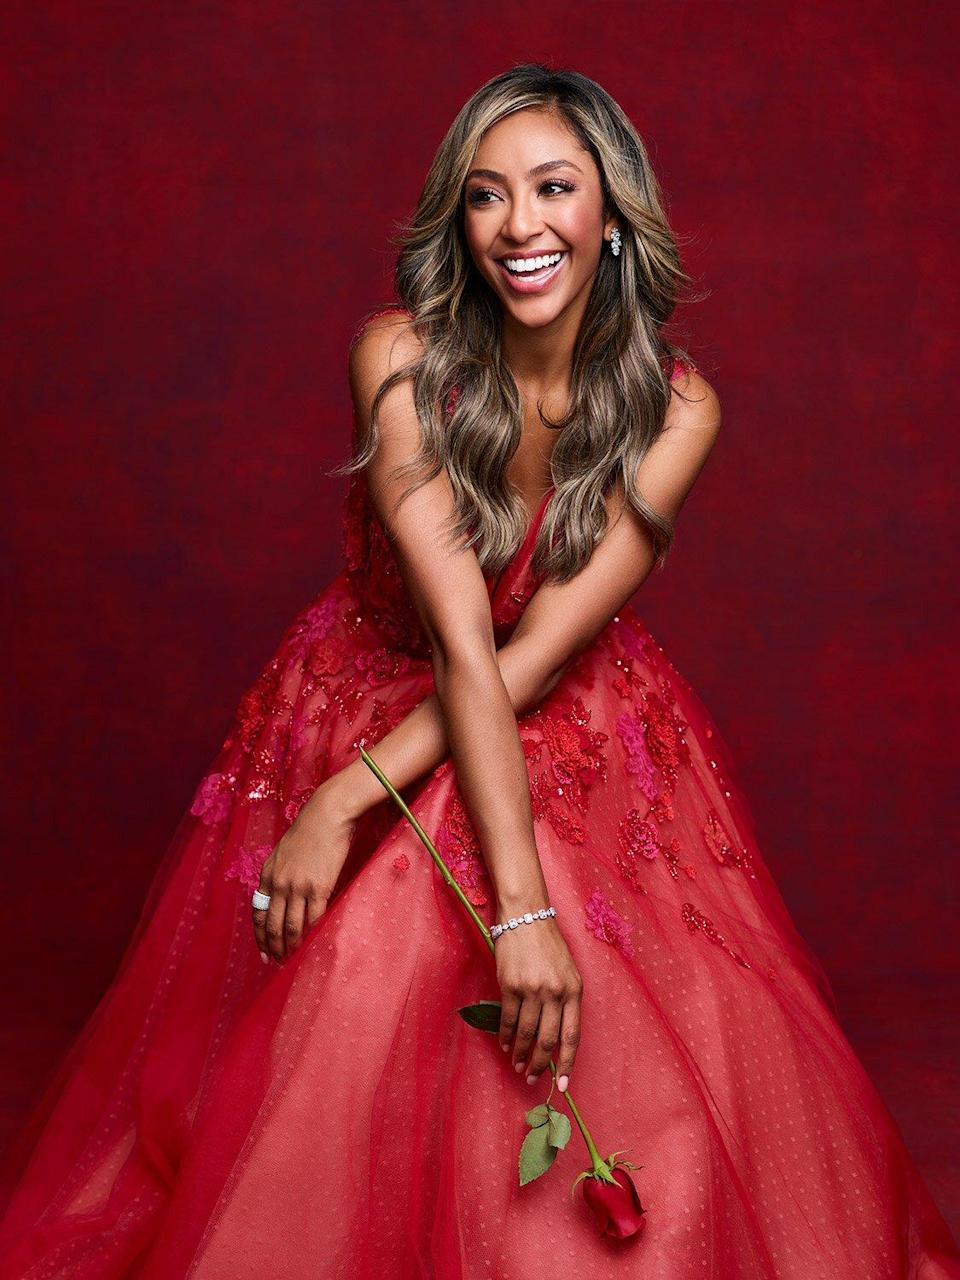 New Bachelorette Tayshia Adams Says She Was Initially 'Worried' the Guys Weren't There for Her